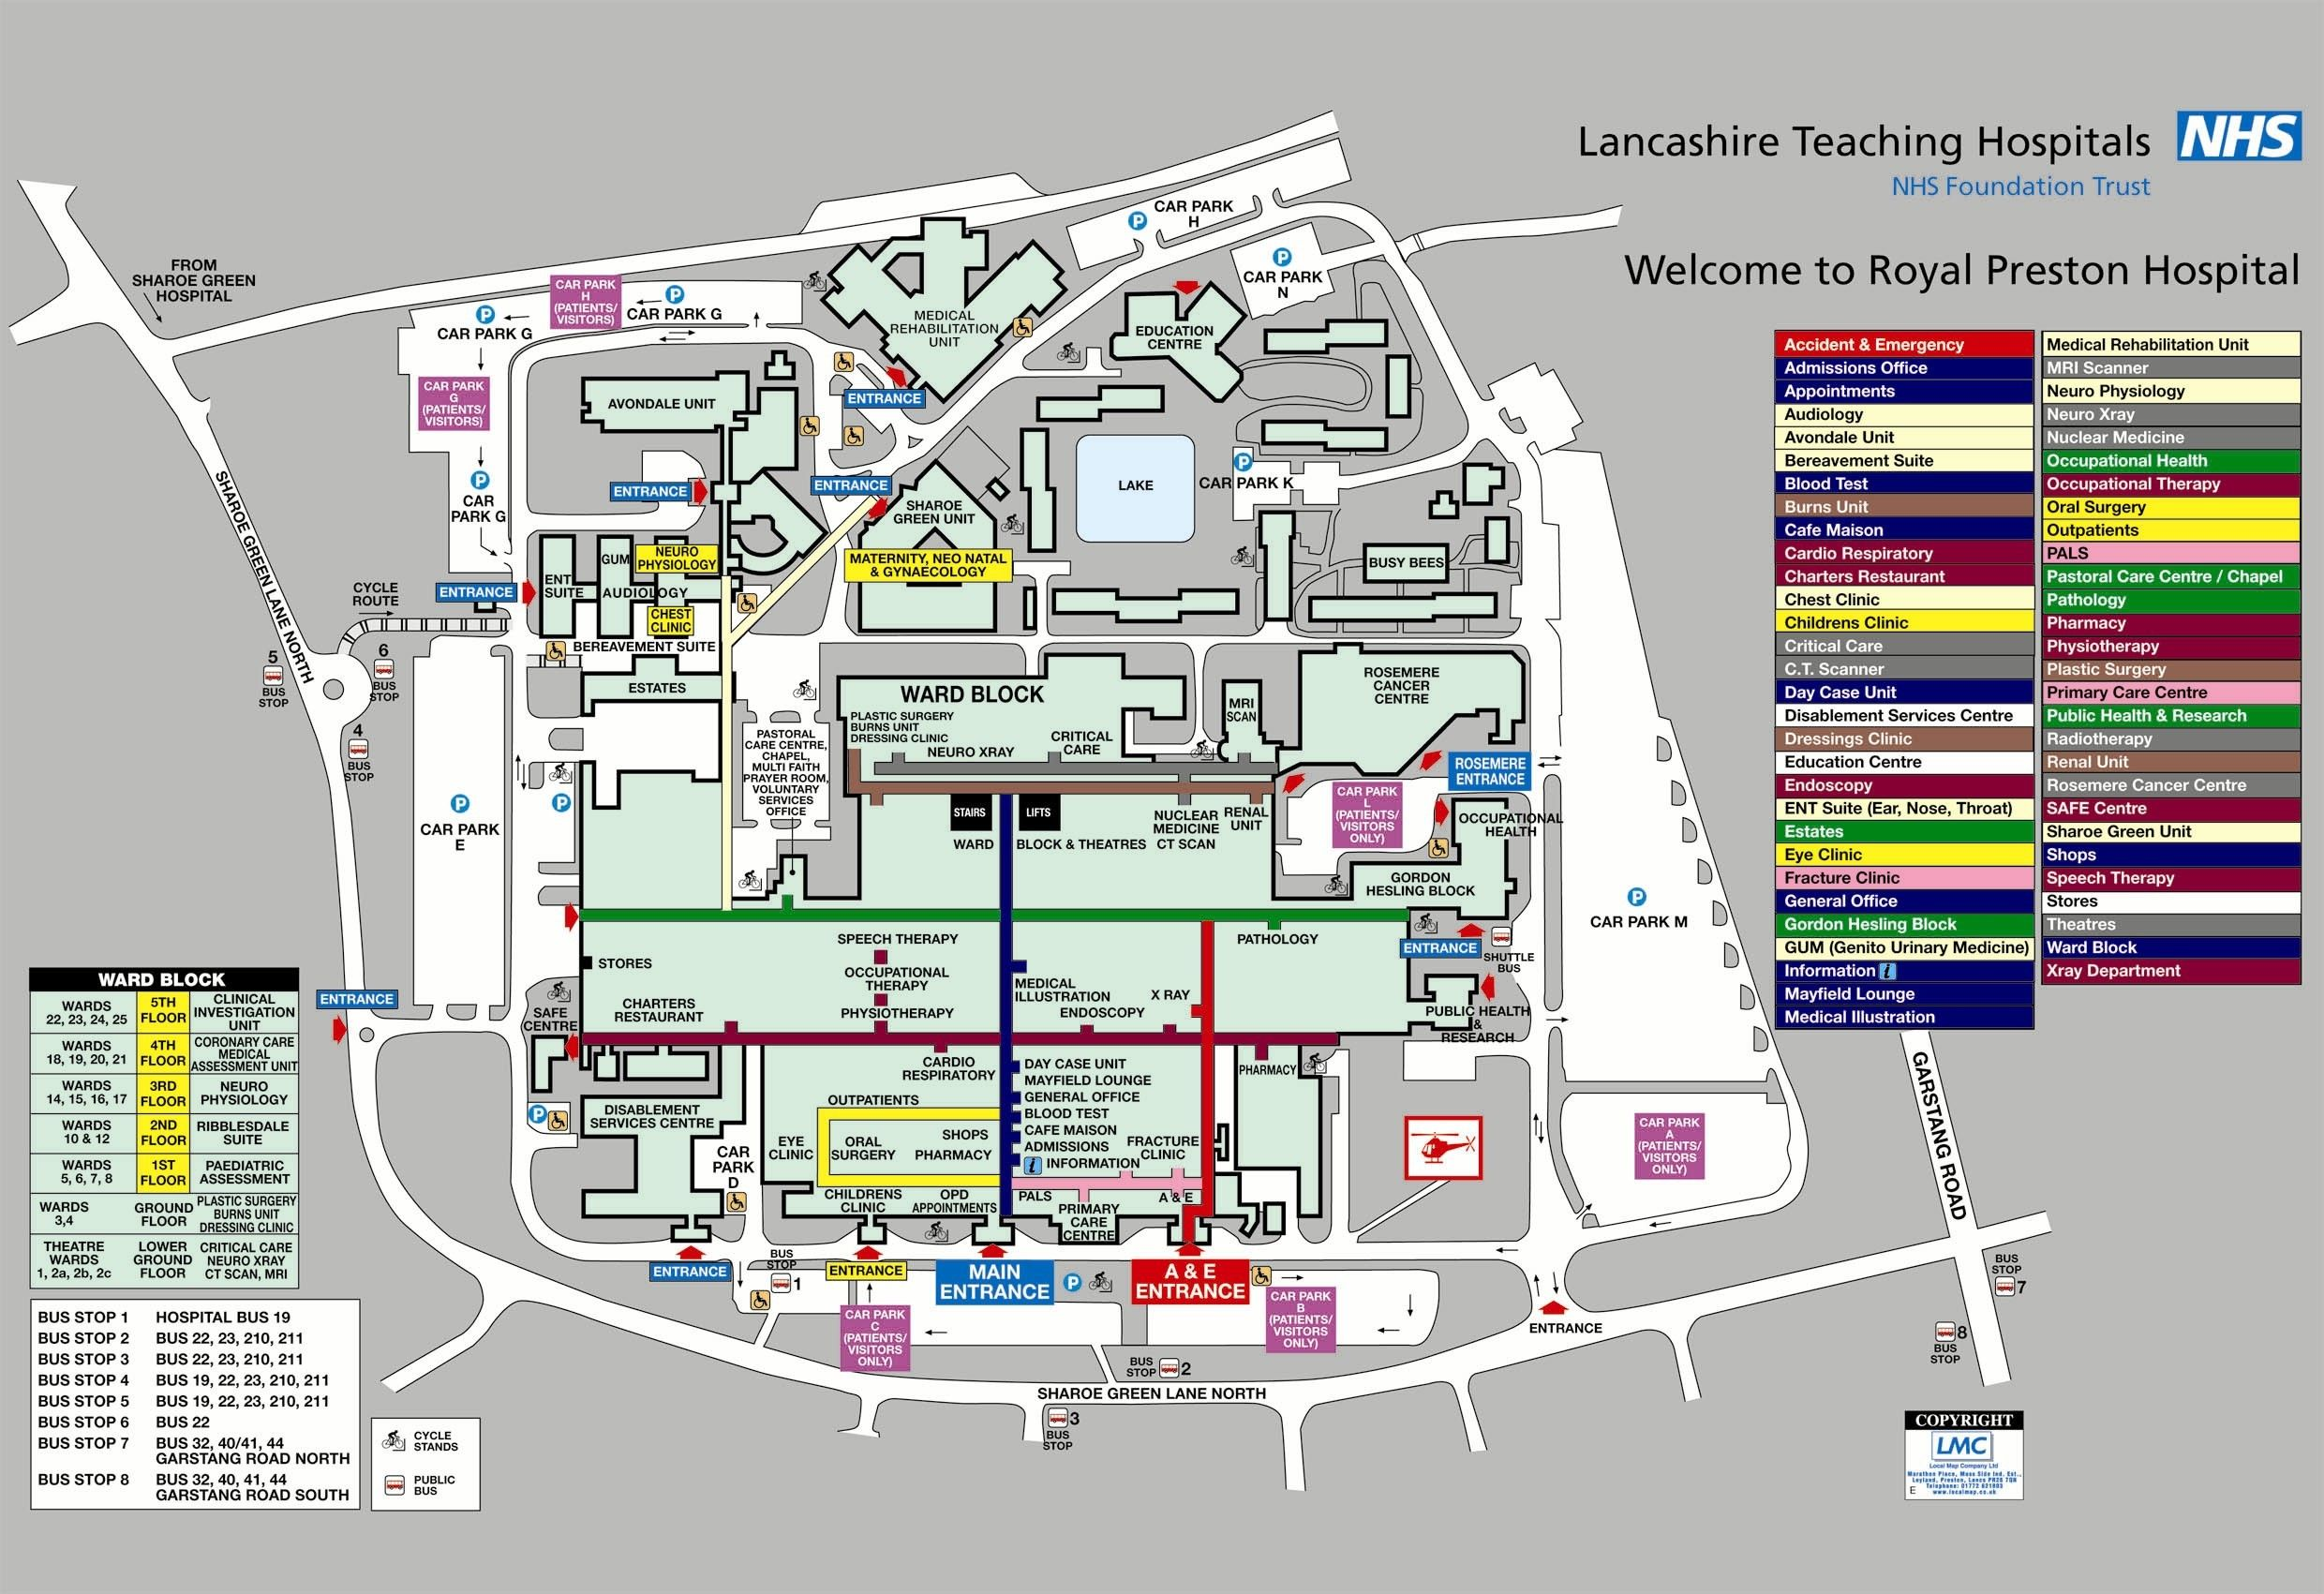 Manchester Royal Infirmary Map Manchester Royal Infirmary Map | Bedroom 2018